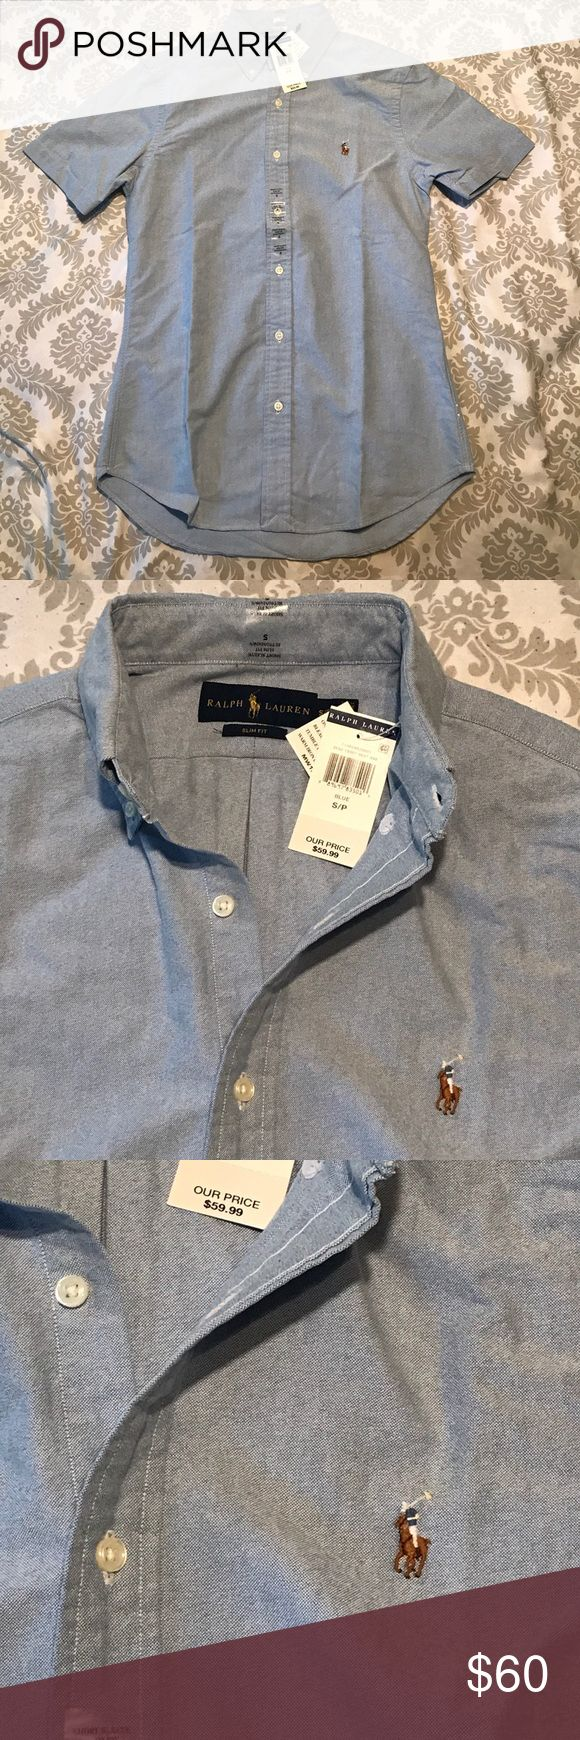 Polo Ralph Lauren Men's shirt sleeve shirt. Size S Polo Ralph Lauren Men's short sleeve, slim fit, button down shirt. Size S. Blue in color. Polo by Ralph Lauren Shirts Casual Button Down Shirts